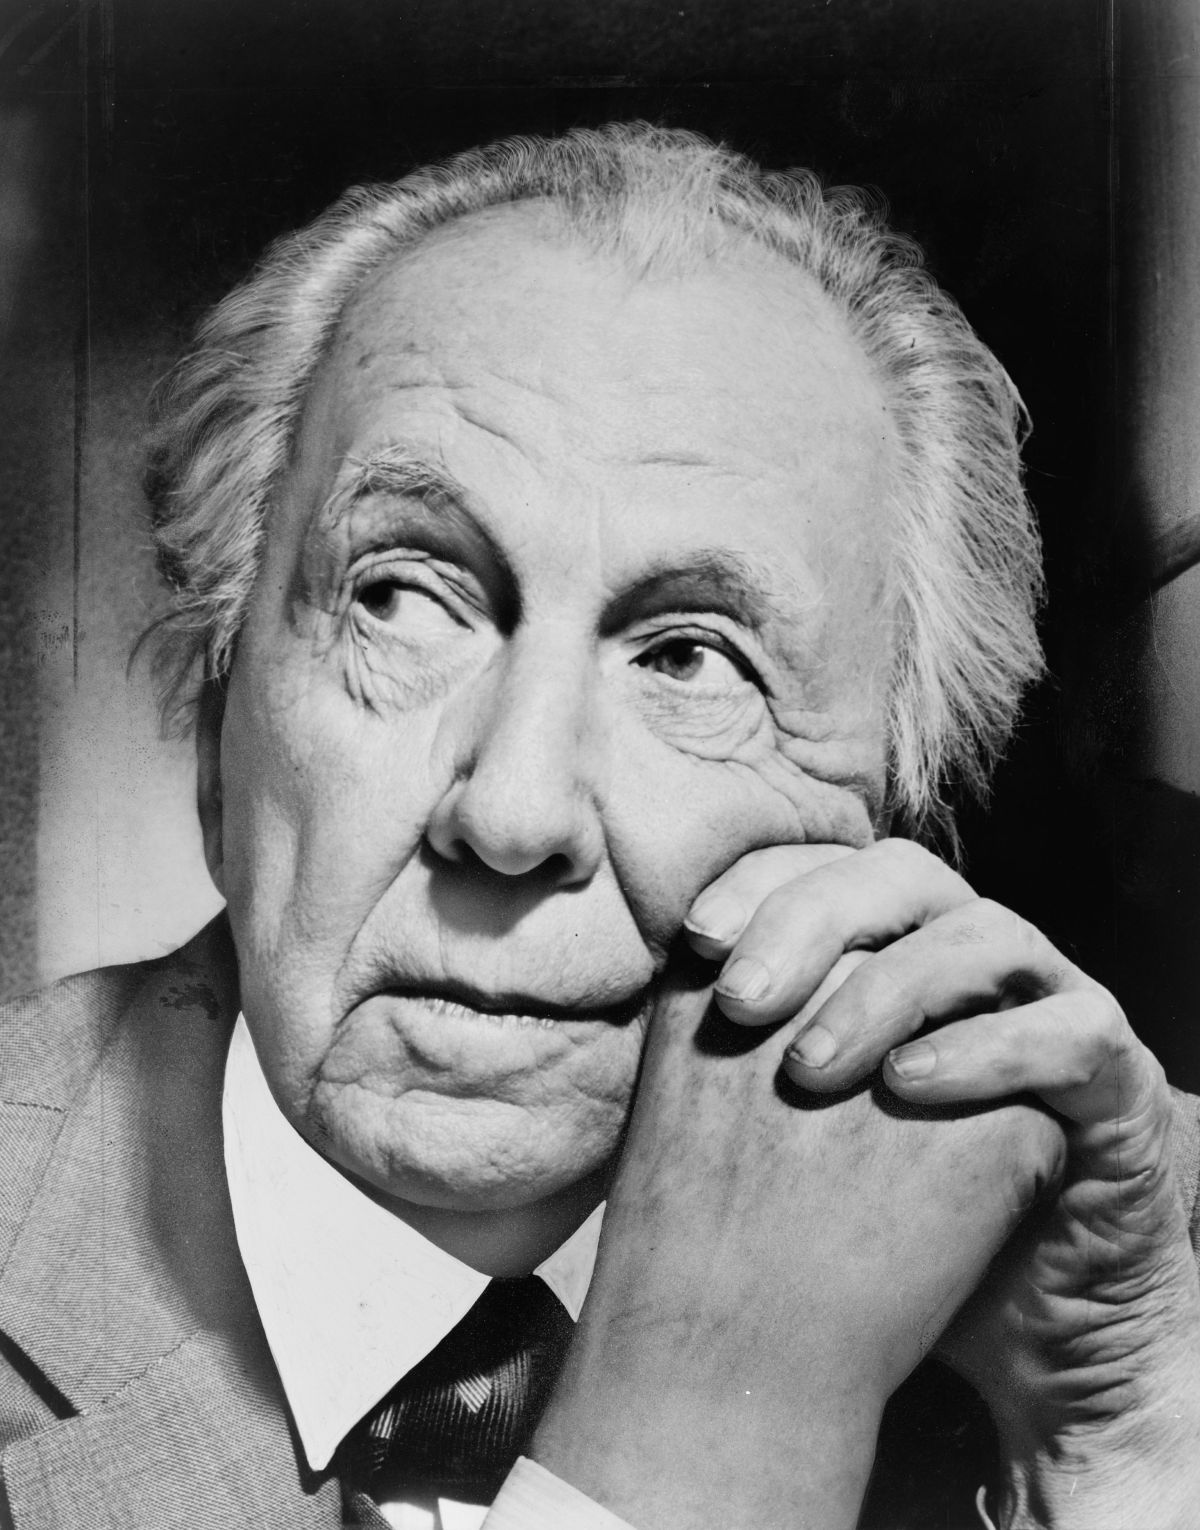 Frank_Lloyd_Wright_portrait.jpg